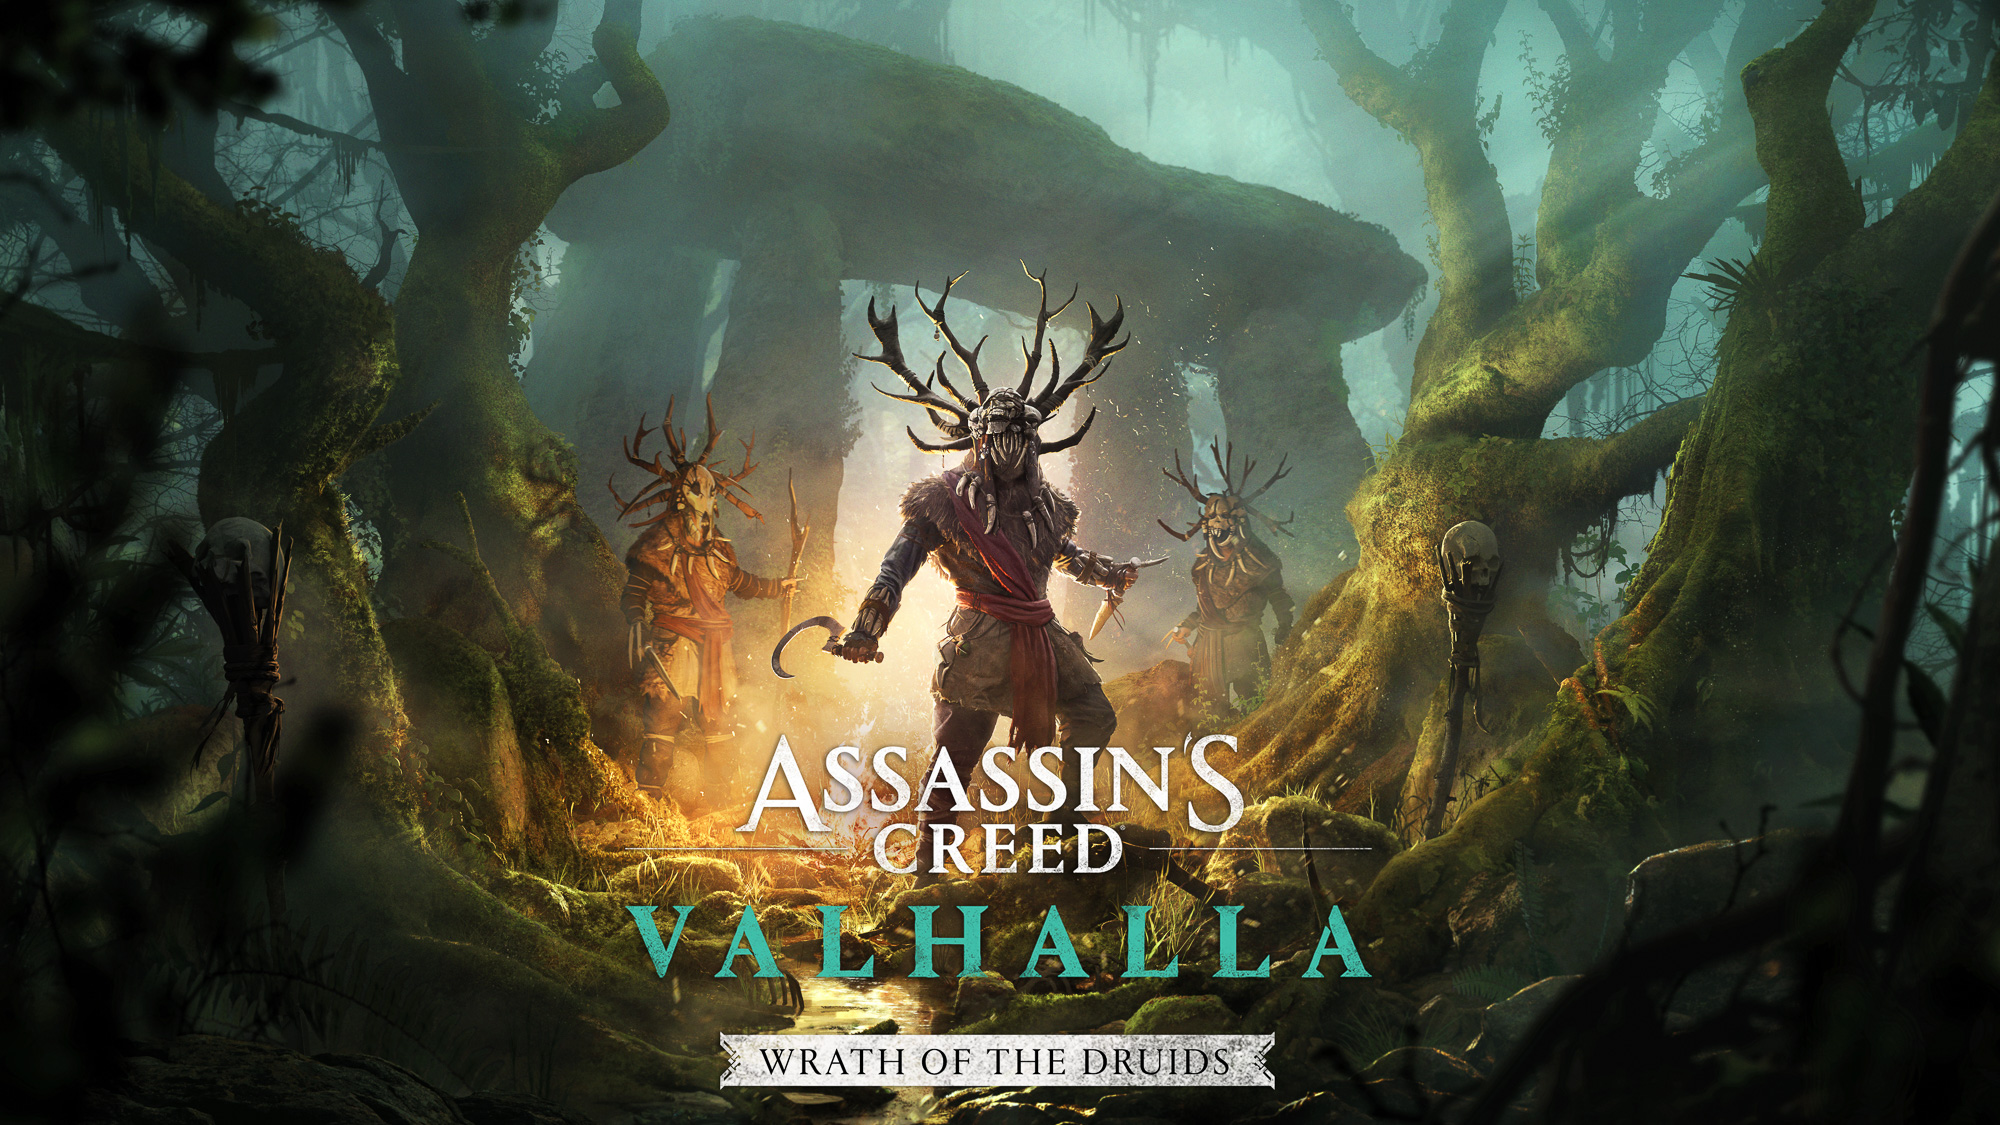 Assassin's Creed Valhalla Post-Launch Announcement